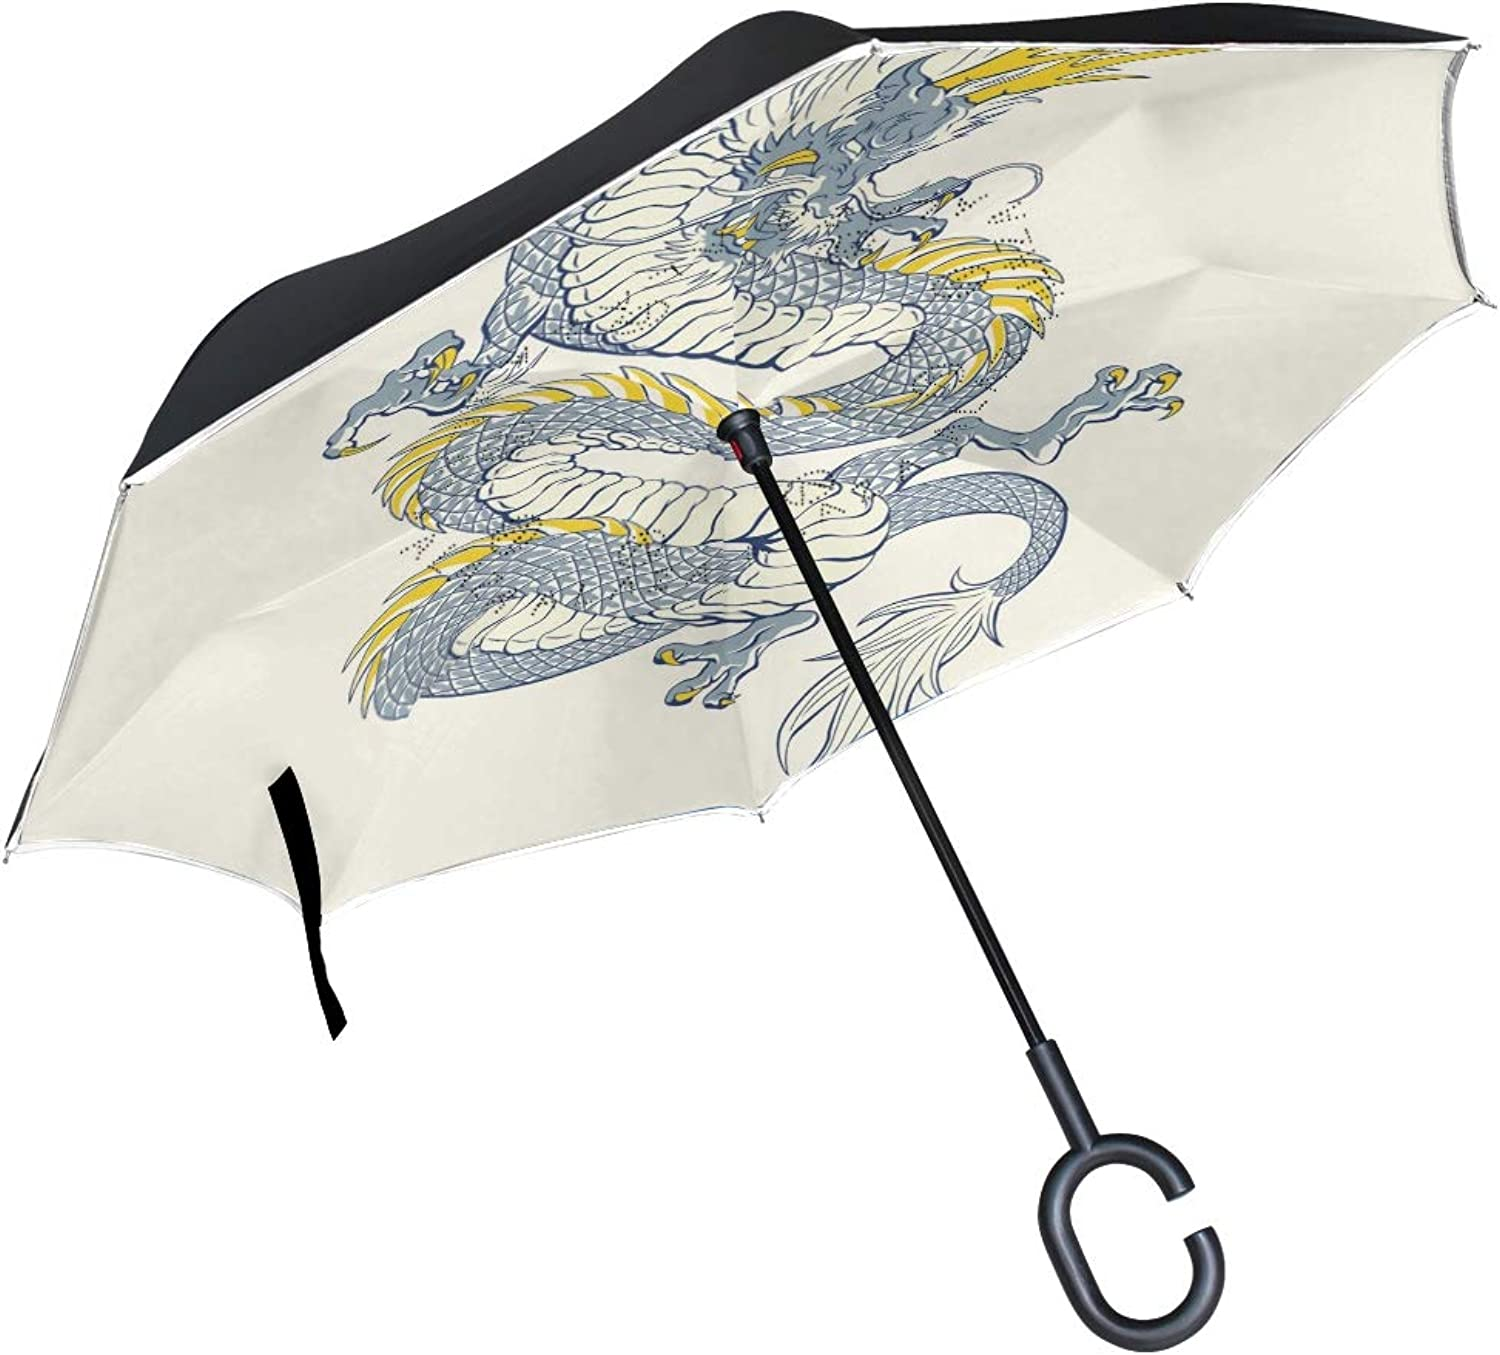 FAJRO Dragon Drawing Upside Down Ingreened Umbrellas CShaped Handle for Car Rain Outdoor Women Men